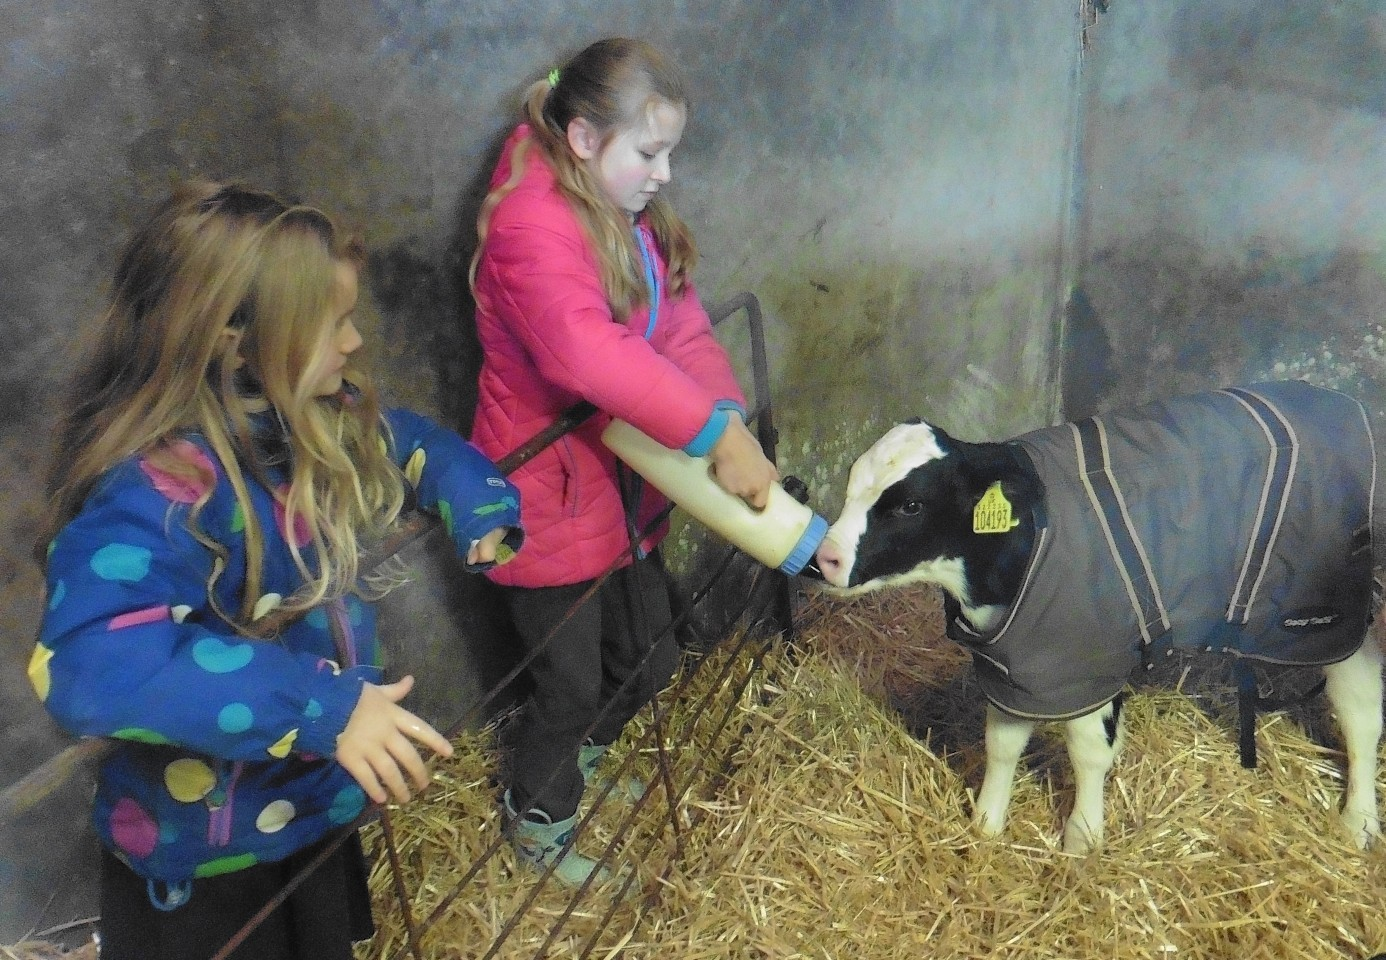 Pupils help feed a calf during a RNCI visit to a farm.